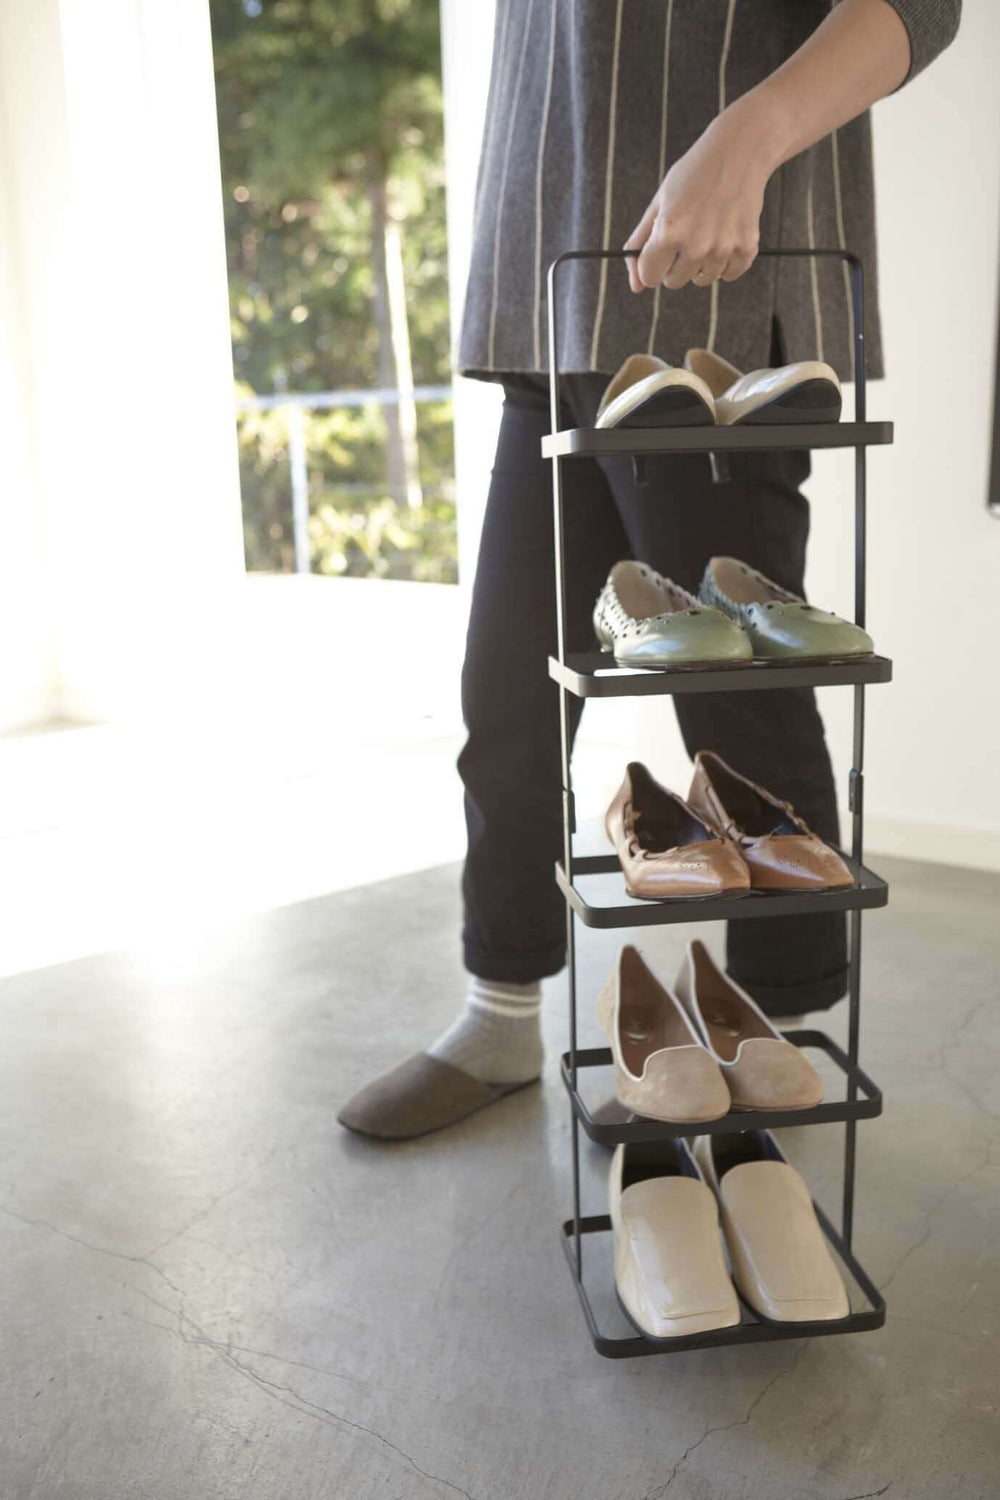 Someone carrying a black Yamazaki shoe rack filled with shoes in a bedroom